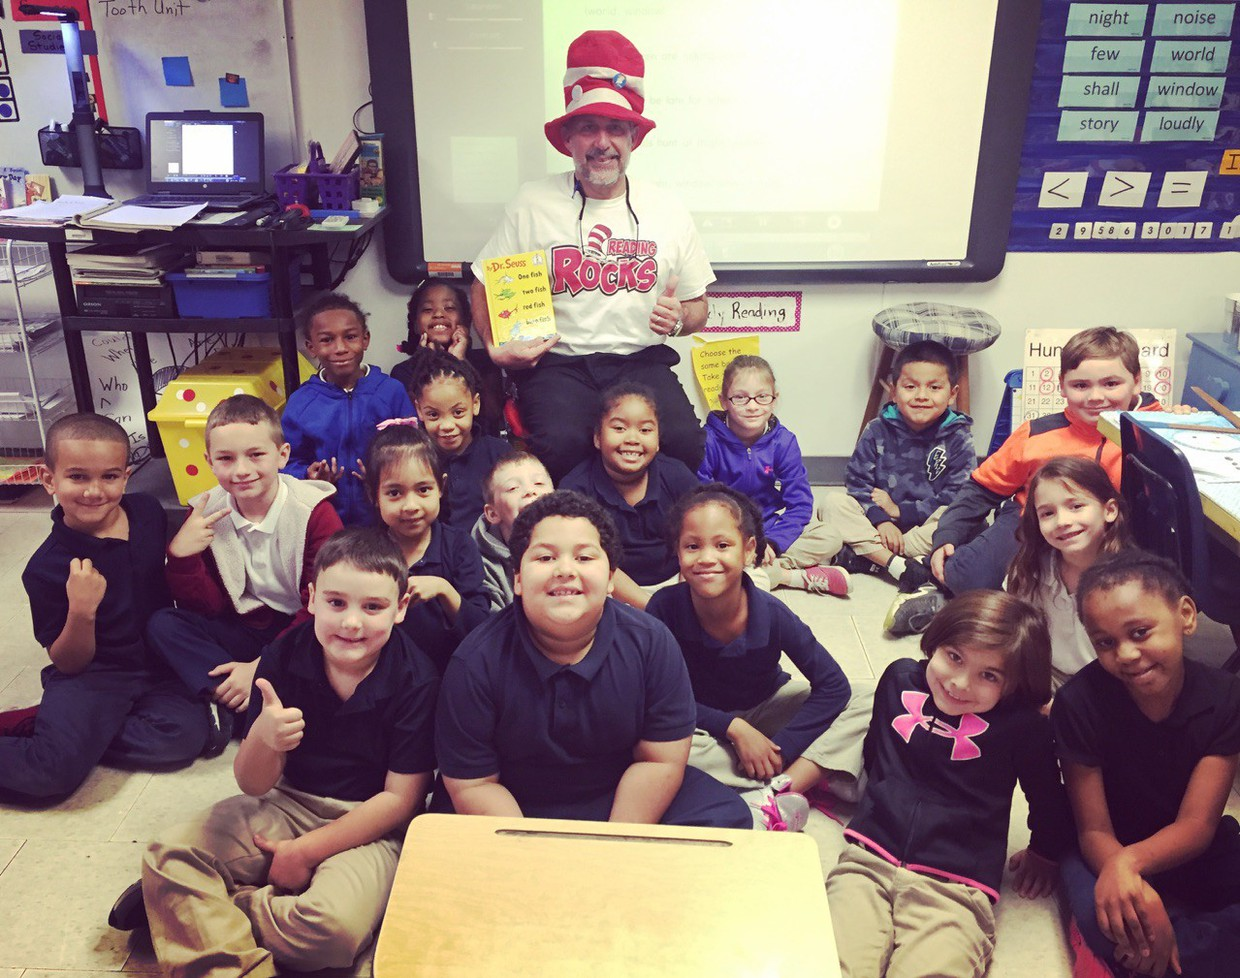 Mrs. Byrom's first-grade class celebrated Read Across America Week by inviting various guest readers to share their favorite Dr. Seuss books. Two of the classroom visitors were Mr. Limoges, principal, who read Green Eggs and Ham and Mr. Whaley, assistant principal, who read One Fish, Two Fish. Red Fish, Blue Fish.